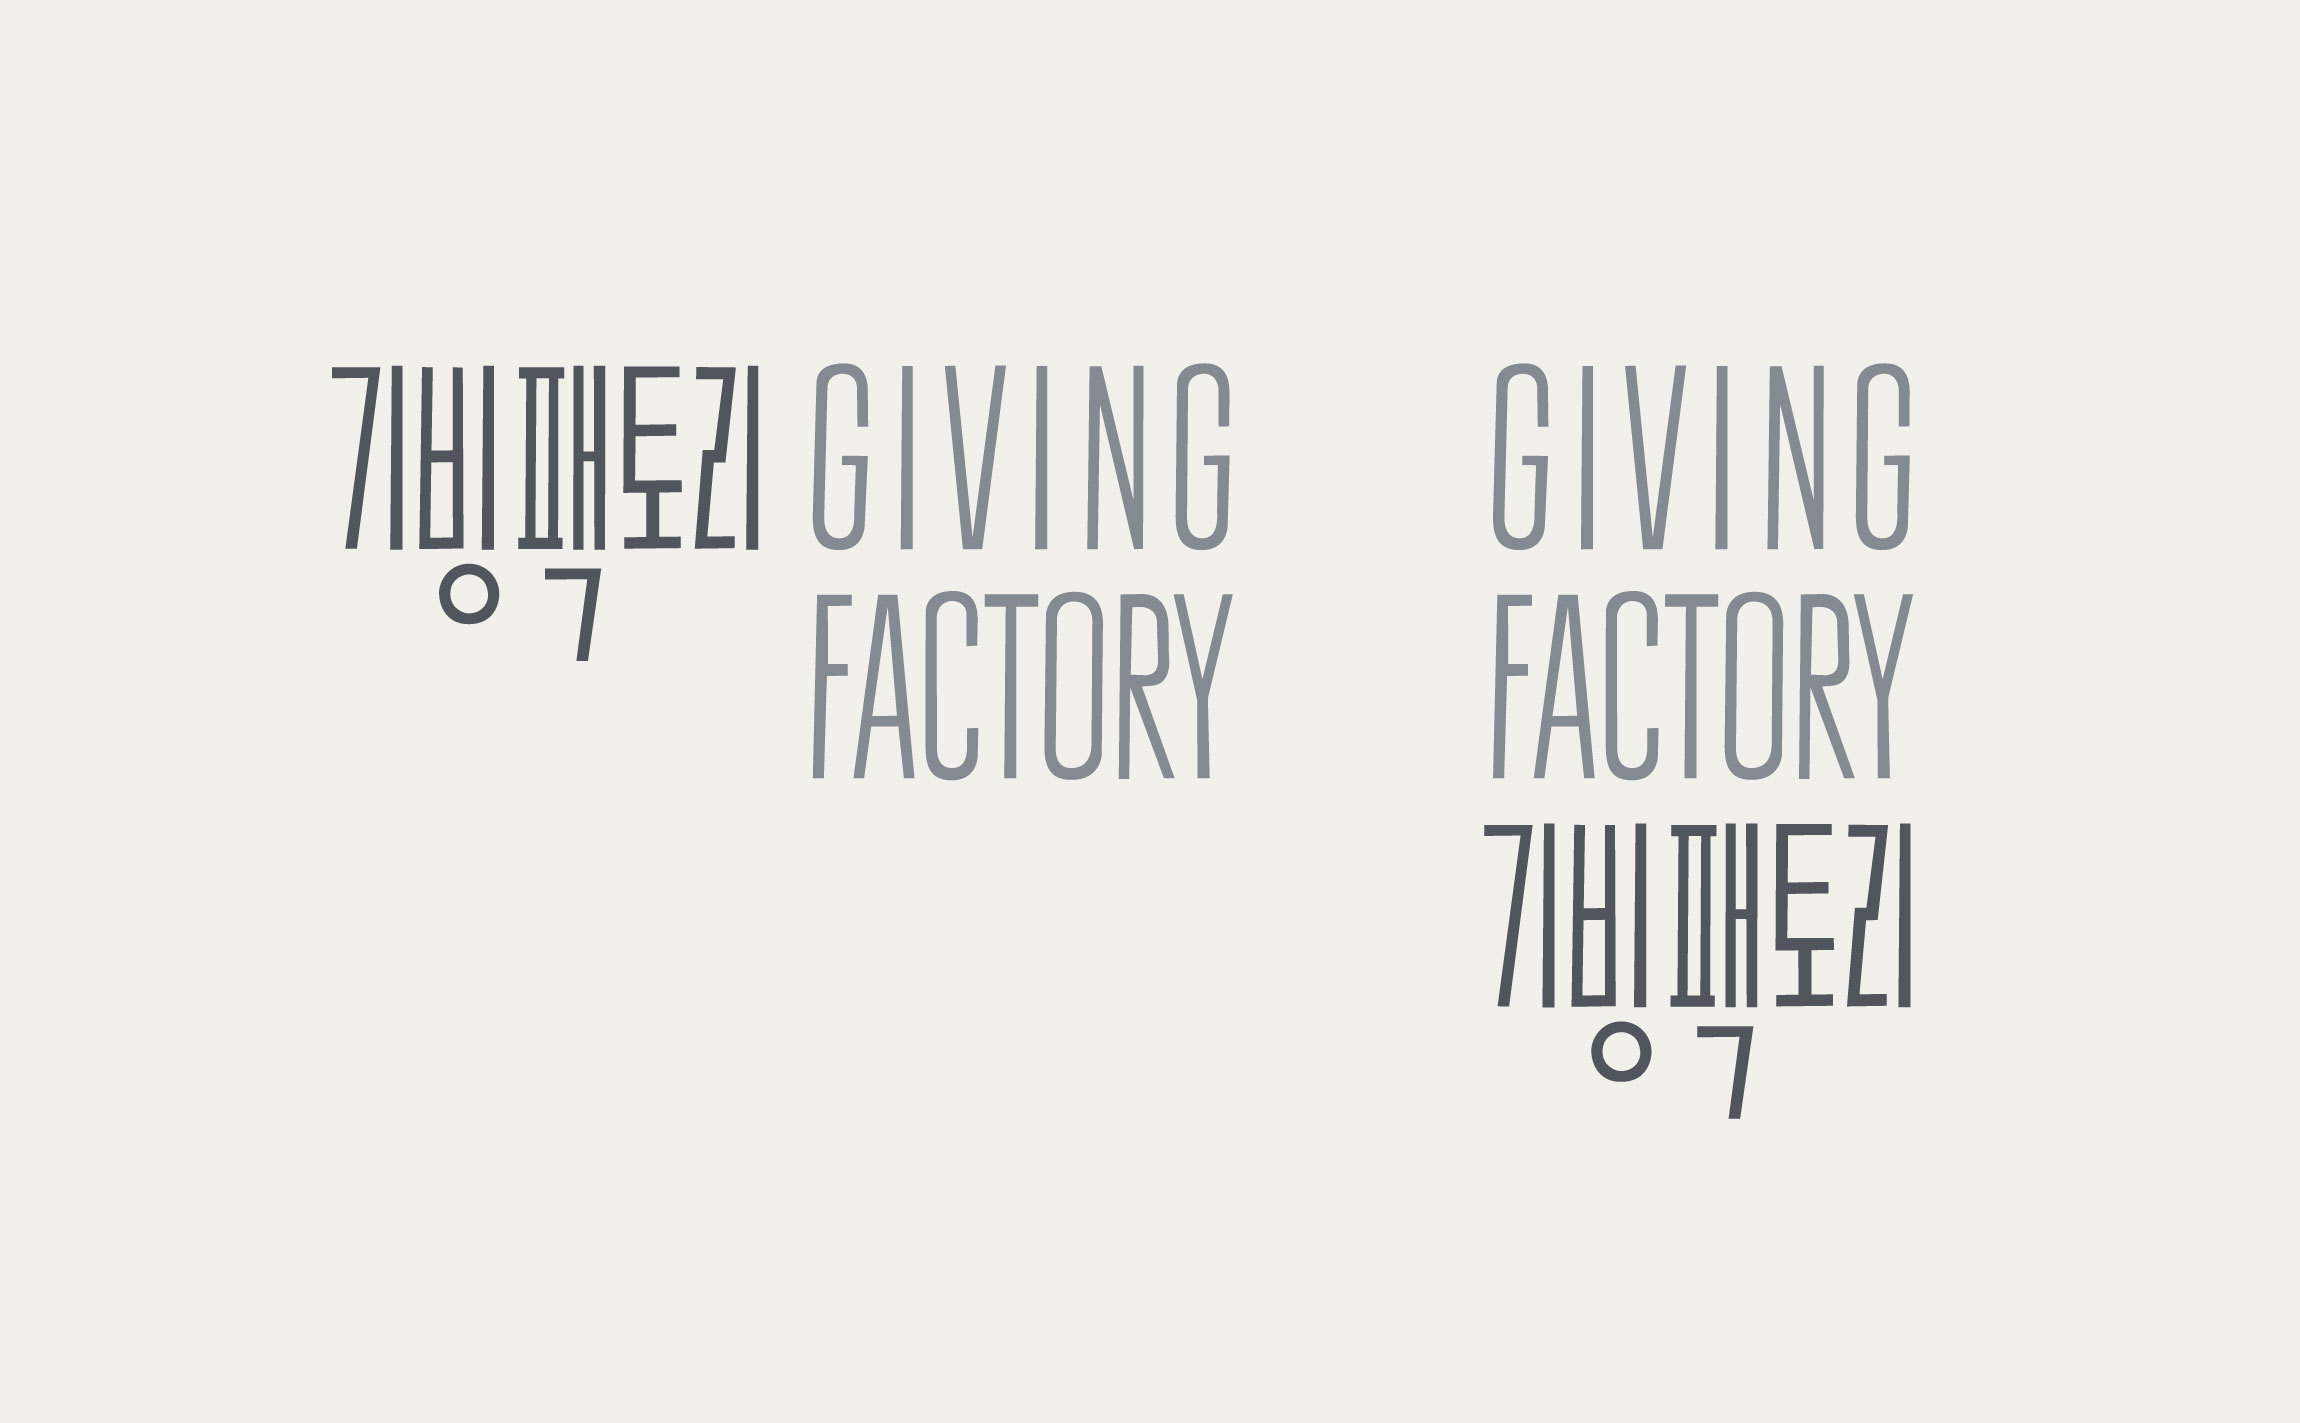 Giving Factory 밀알복지재단 그래픽